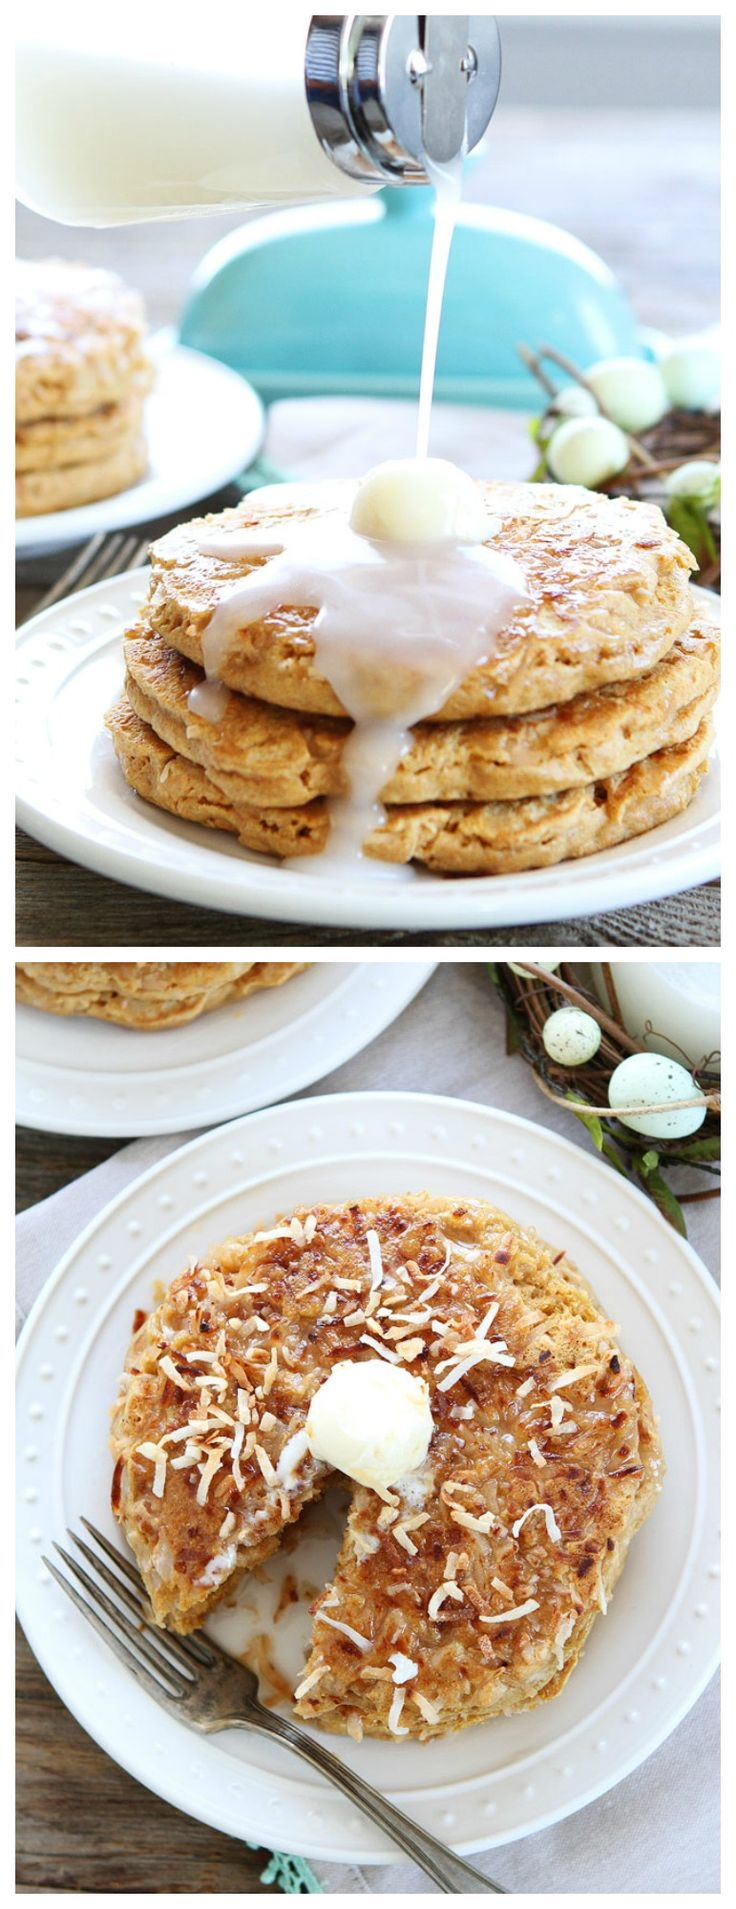 Toasted Coconut Pancakes Recipe on twopeasandtheirpod.com The toasted coconut topping is amazing! You have to try these pancakes!